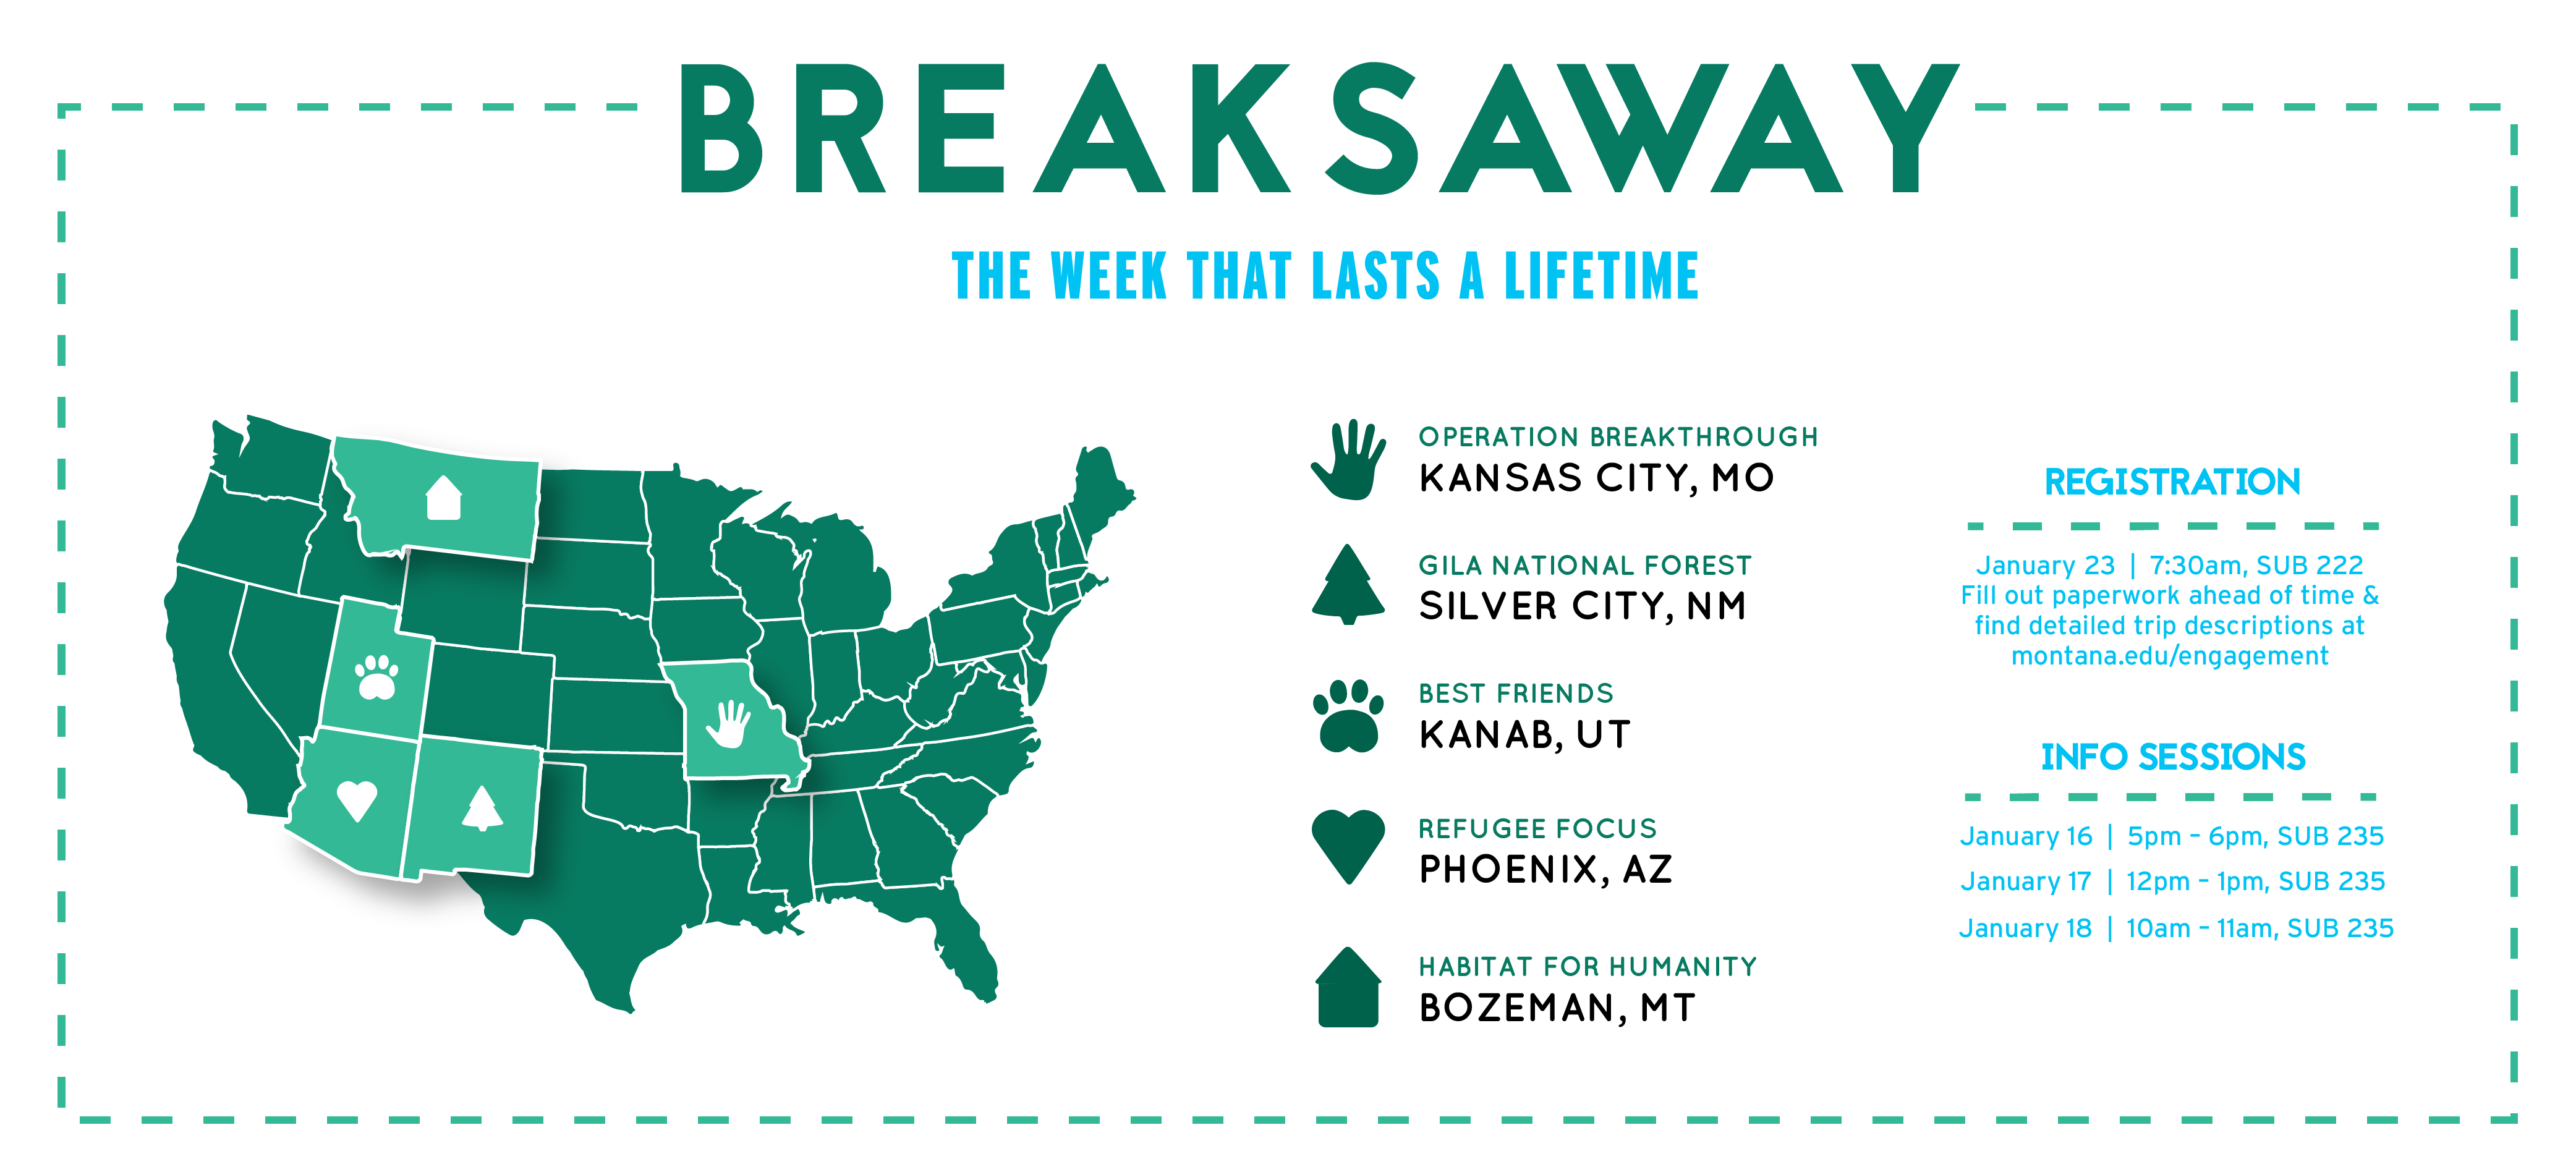 breakaway the week that lasts a lifetime. operation breakthrough Kansas City, mo. gila national forest, nm. best friends, Kanab, ut. refugee focus, Arizona. habitat for humanity Bozeman, mt. registration is January 23 at 7:30am in sub 222. fill out paperwork ahead of time at montana.edu/engagement. info sessions January 16th 5pm-6pm sub 235. January 17th 12-1pm sub 235. January 18 10am-11am sub 235.